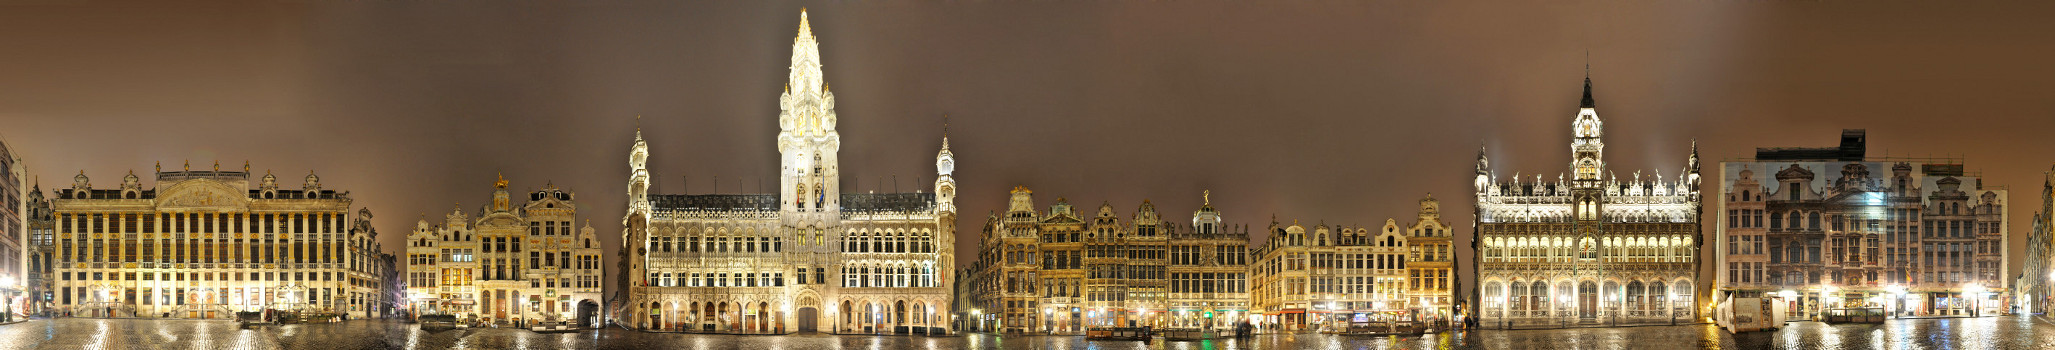 Grand Place • Brussels • Belgium